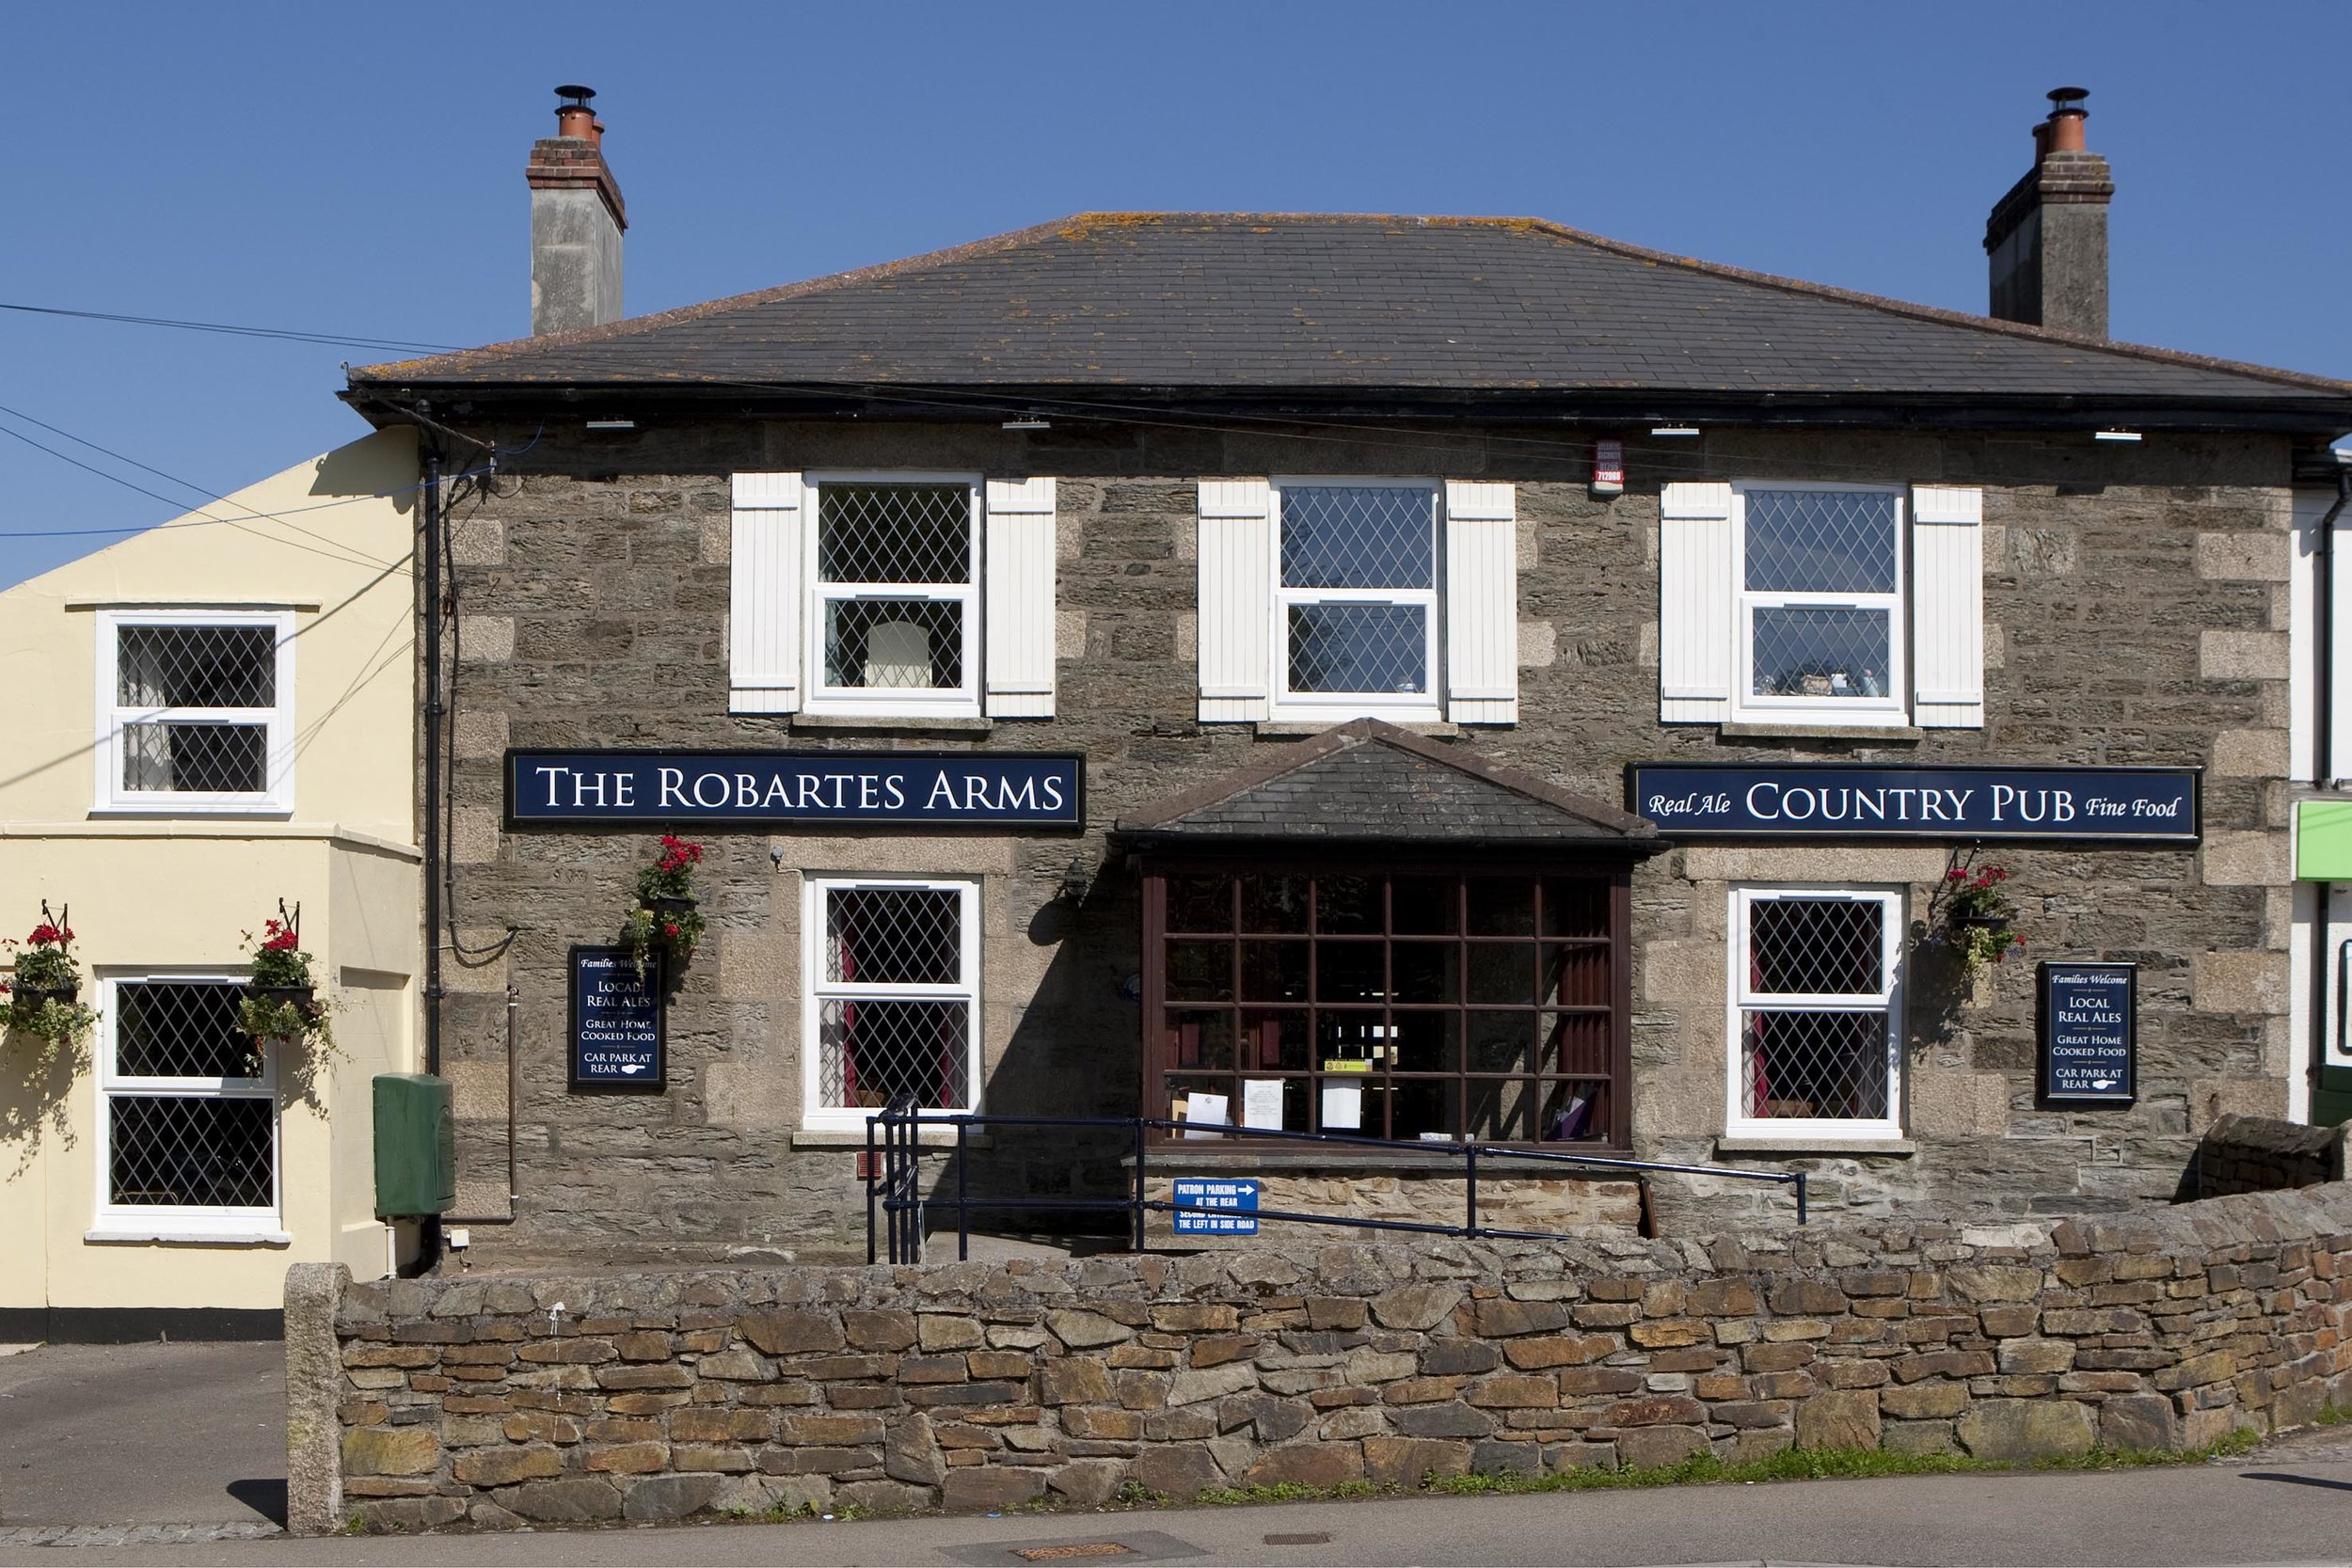 The Robartes Arms, Illogan - A classic village pub in the heart of the village, with a small car park and ample street parking.